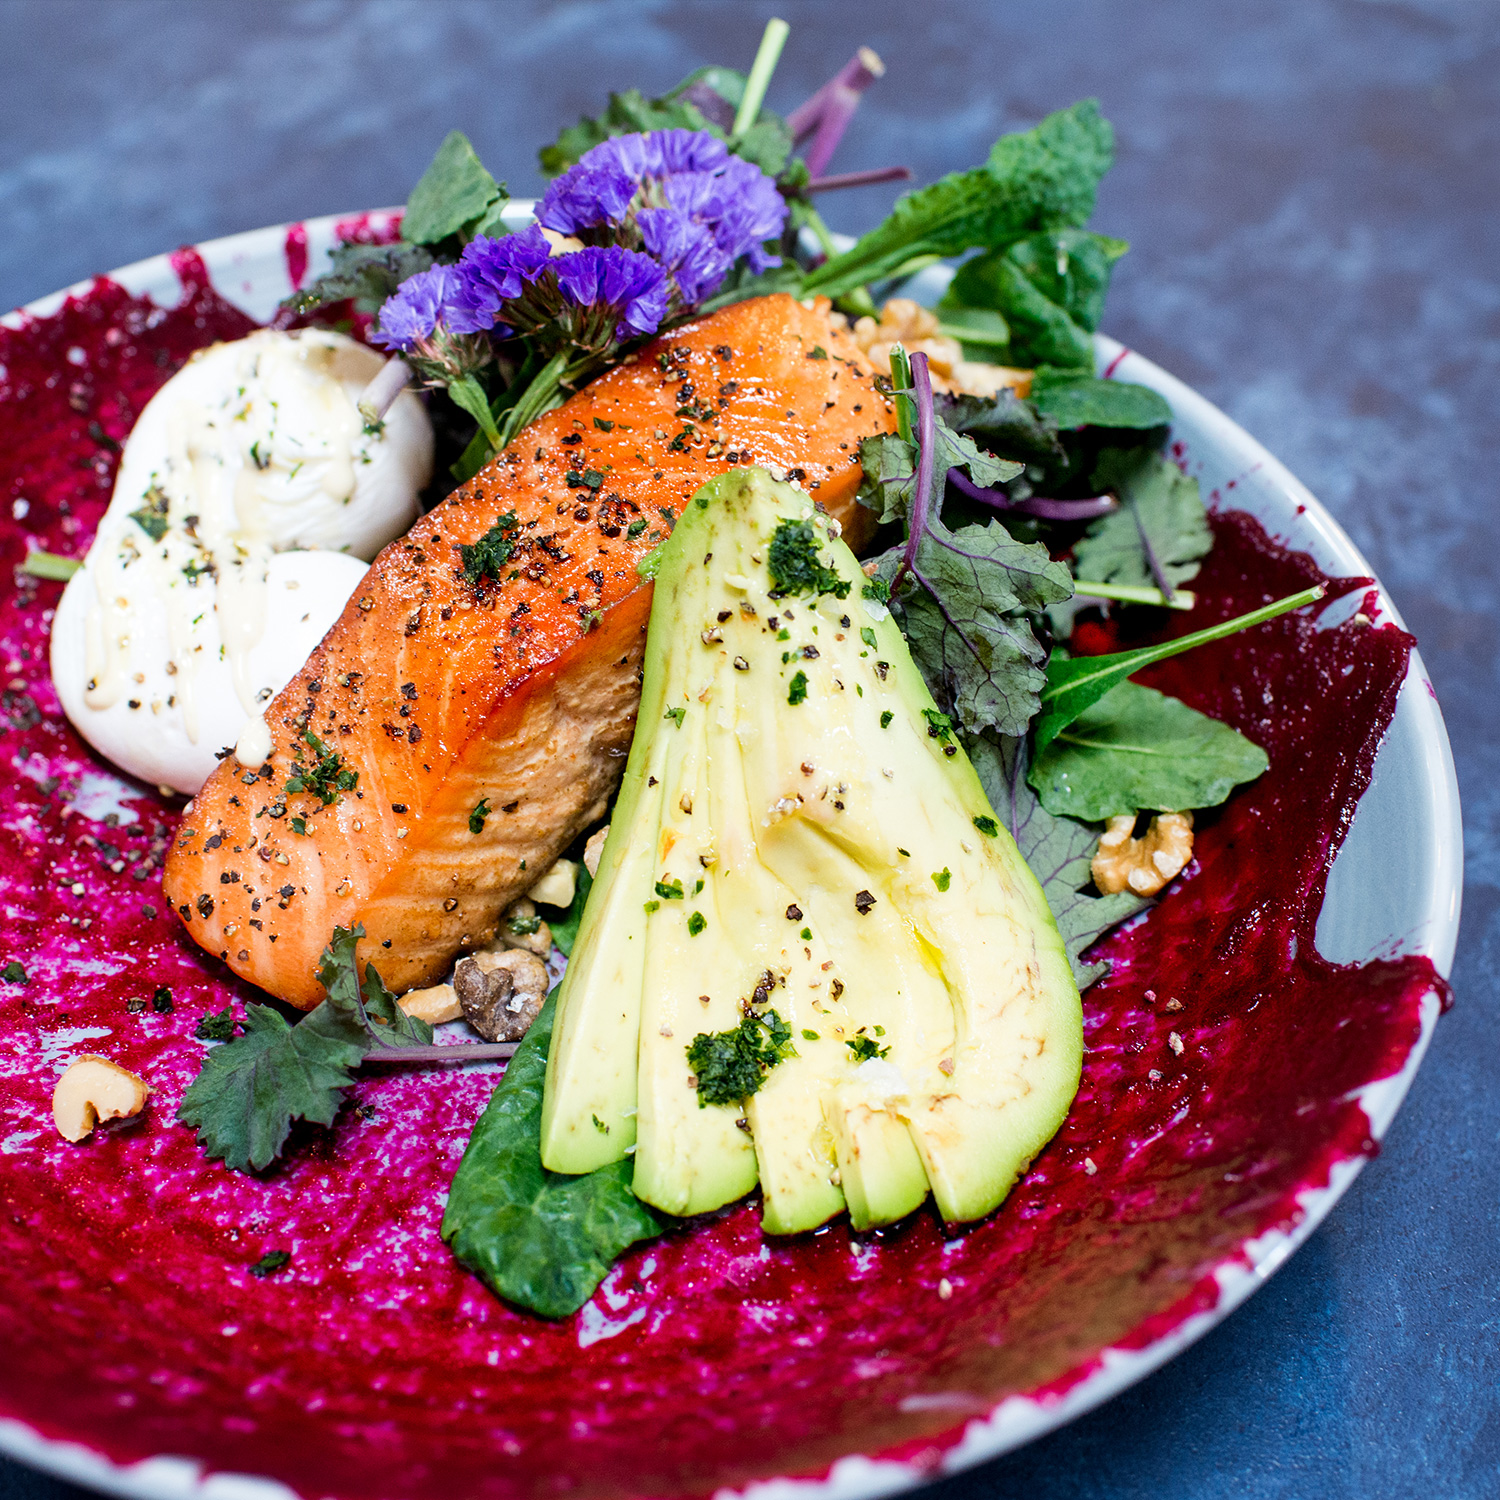 HOUSE SMOKED SALM0N - beetroot puree splash, shaved kale, roasted walnuts, avocado, poached eggs topped with house mustard aioli